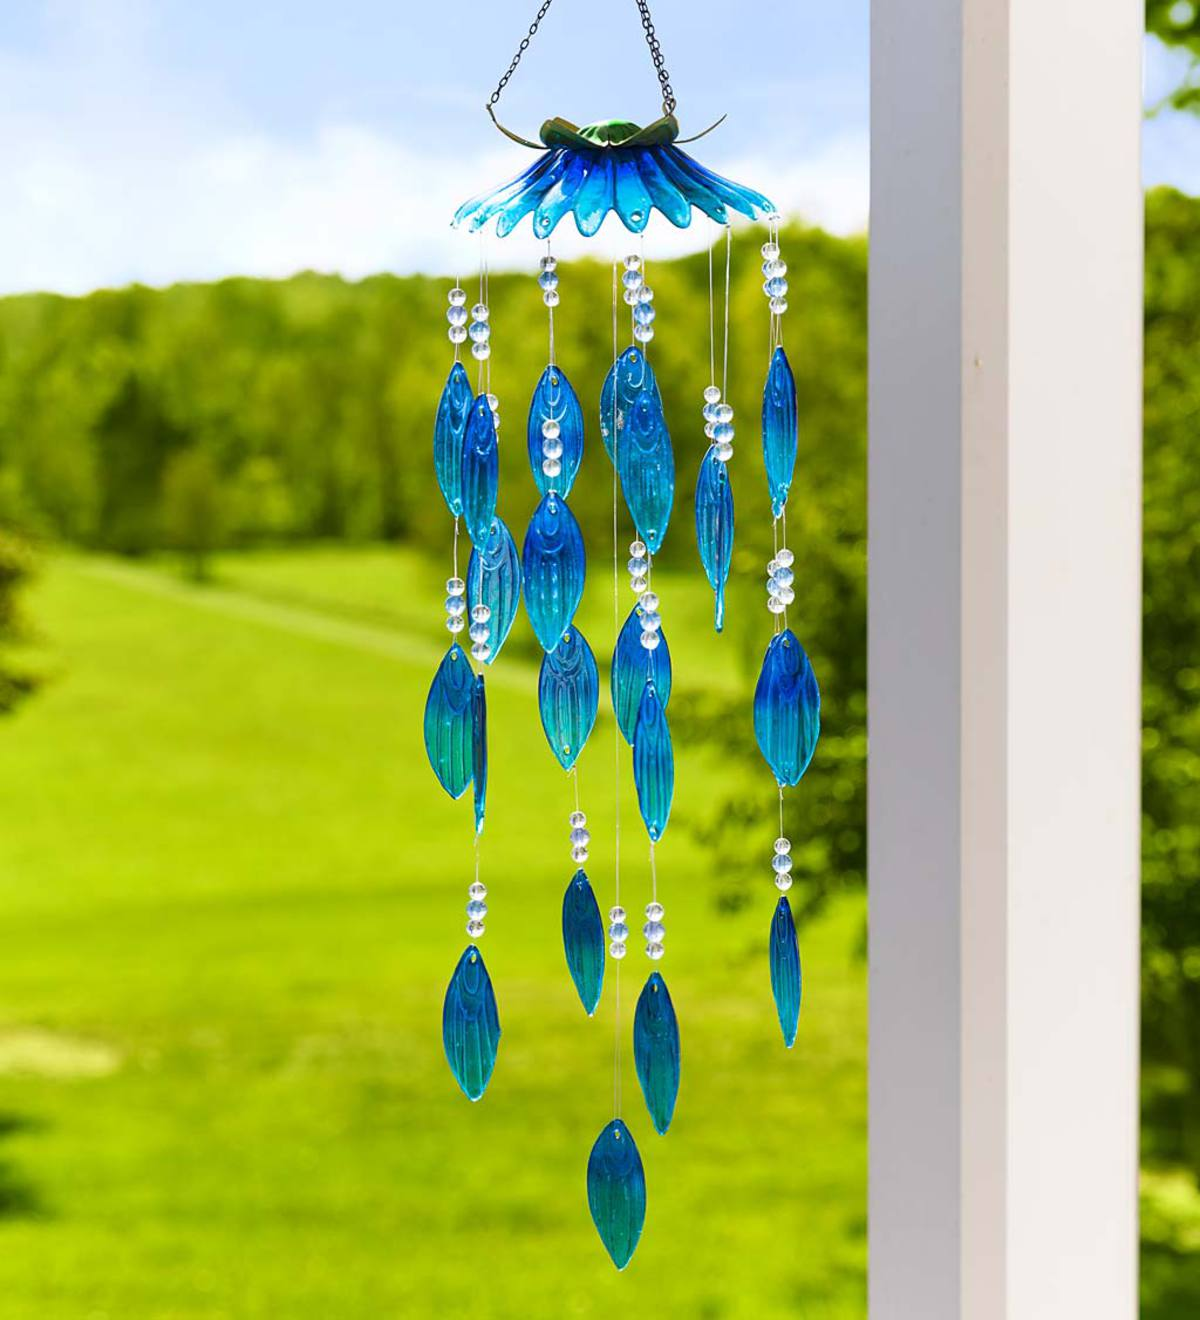 Colorful Glass Flower Petals Wind Chimes - Blue